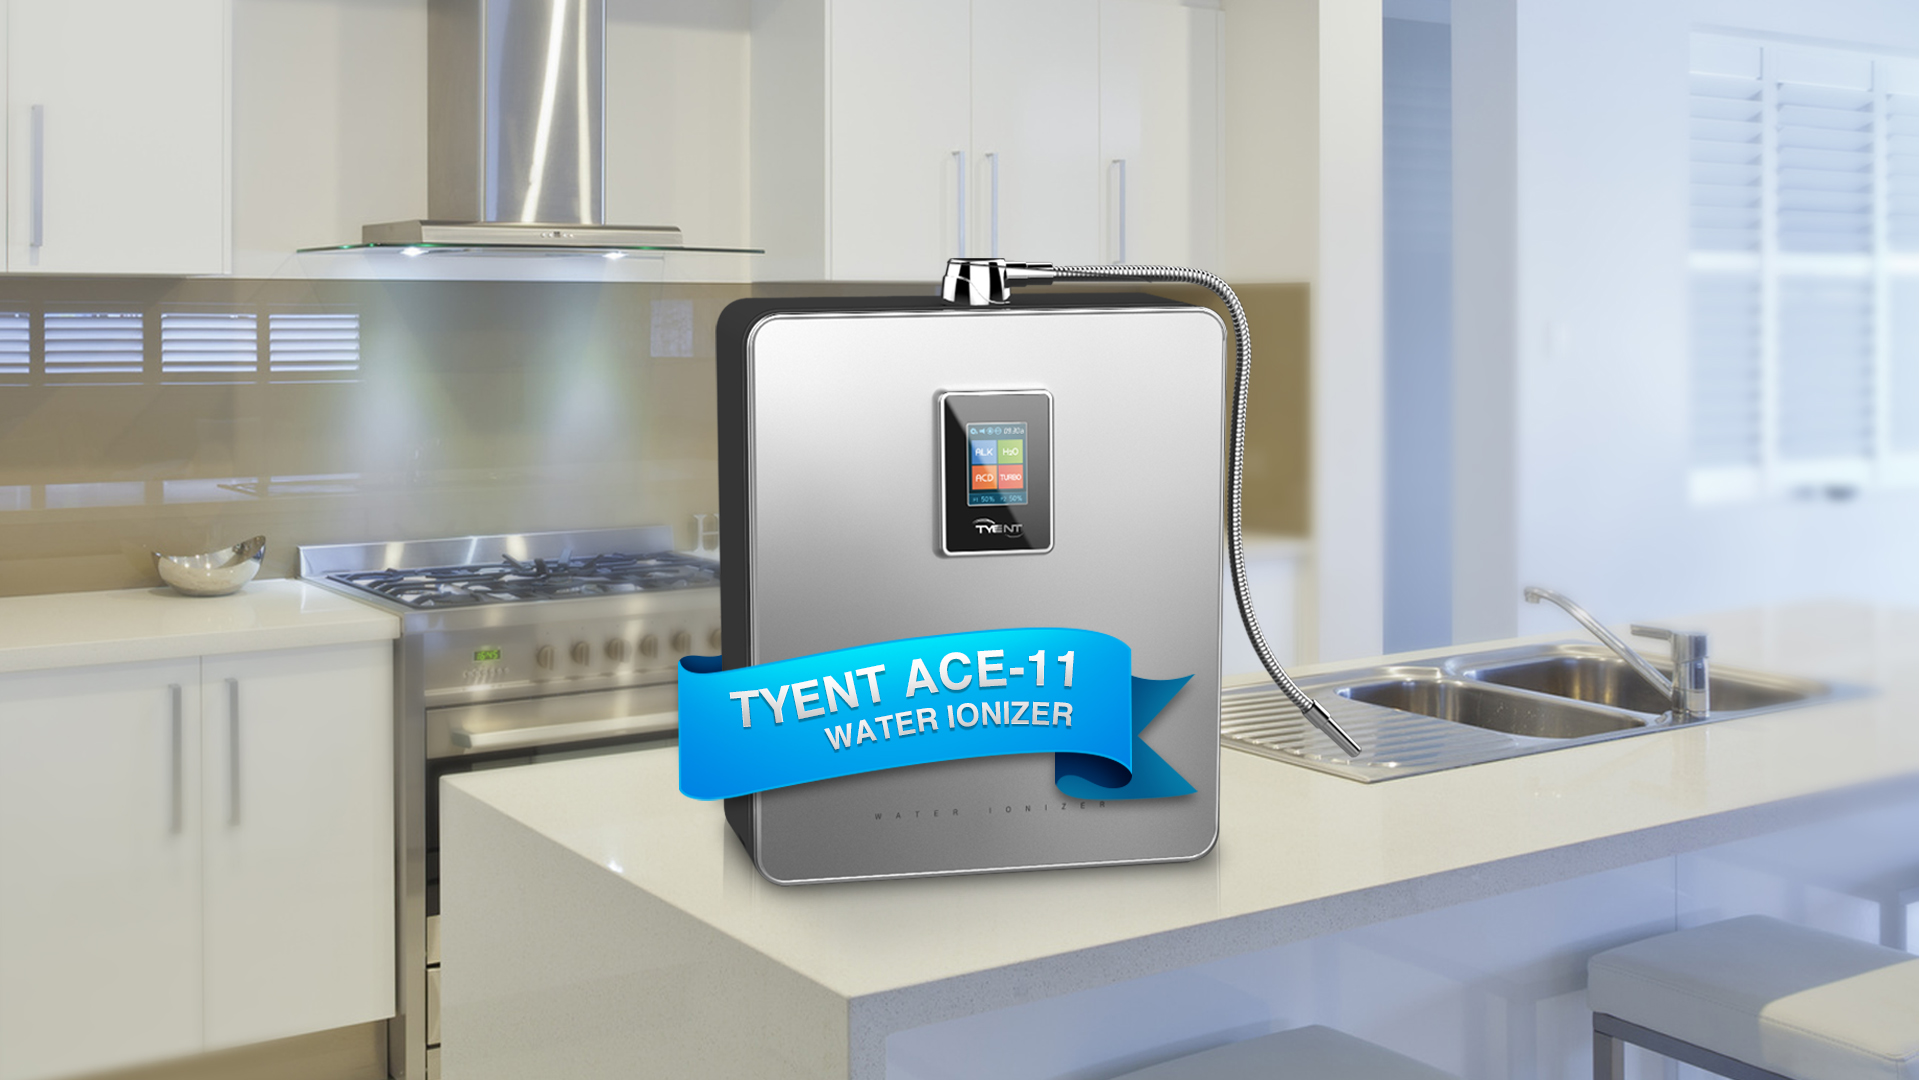 Tyent's new Ace-11 water ionizer is the hottest product in alkaline water.